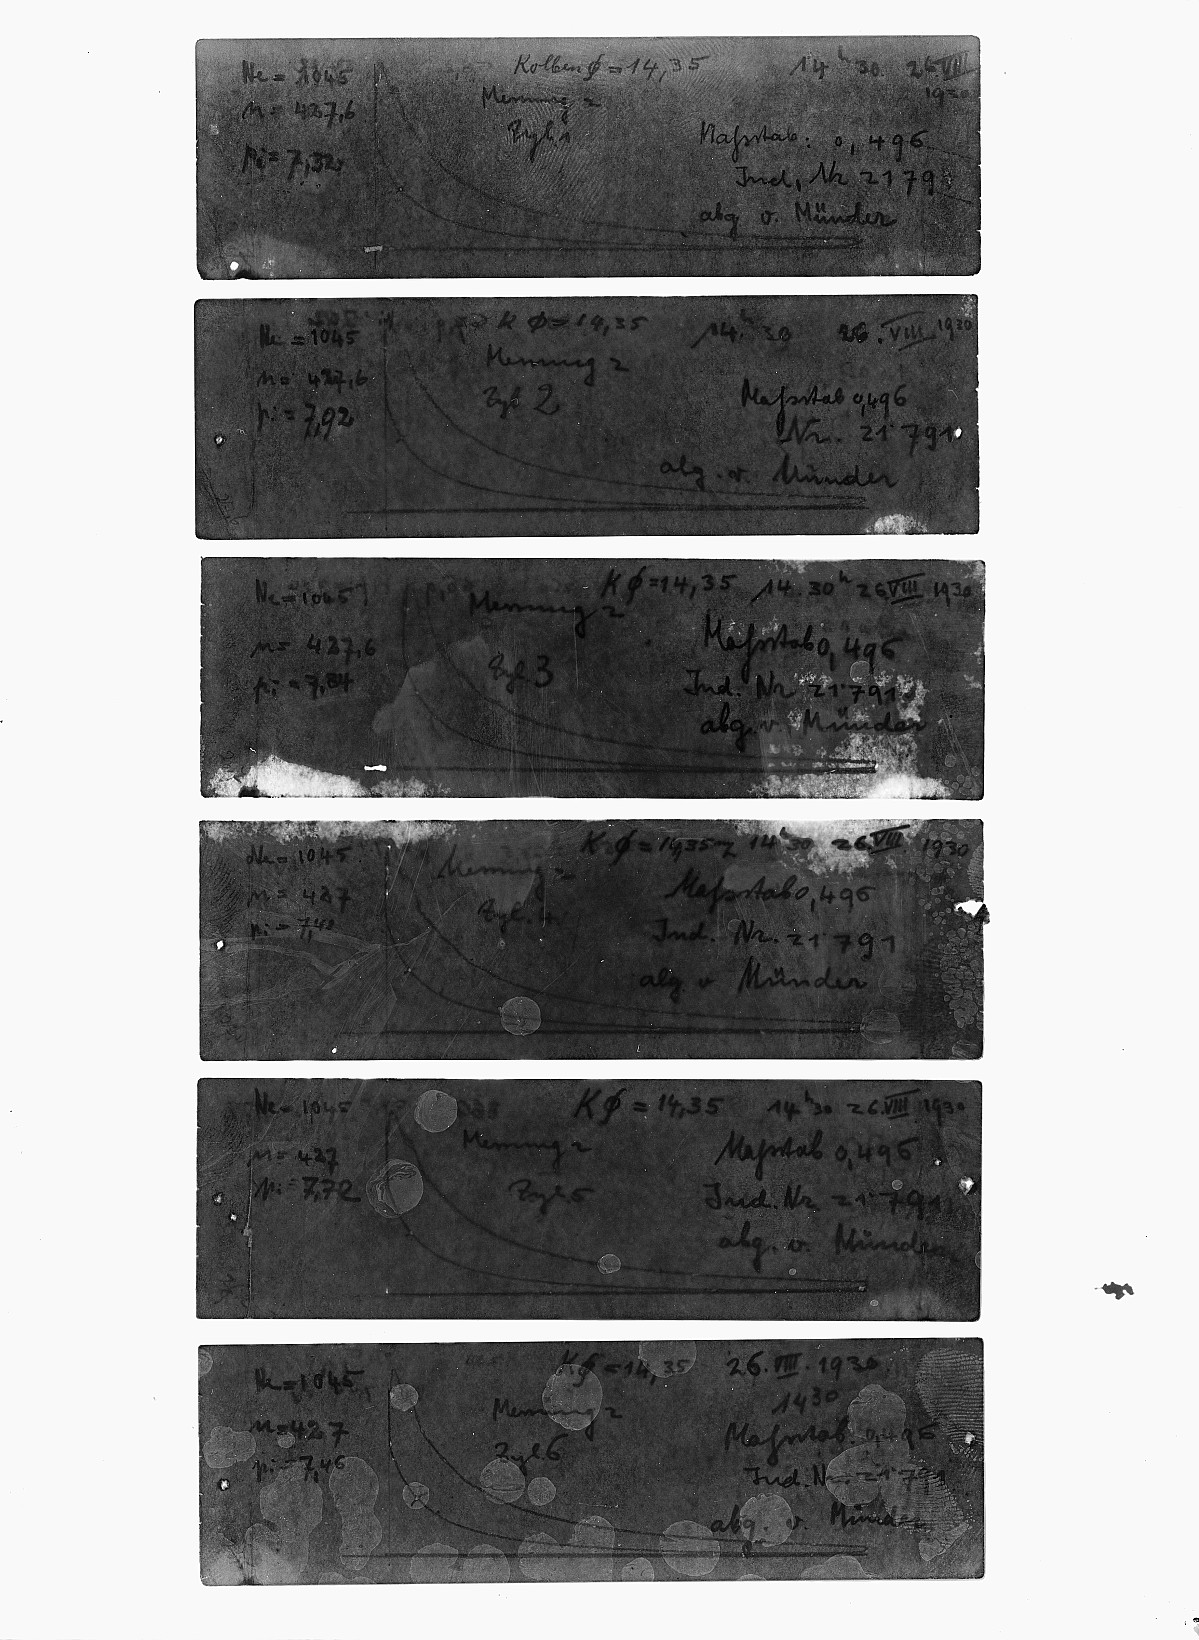 GFA 16/15188: Diagrams in the acceptance reports of GOMZY-LENINGRAD engine